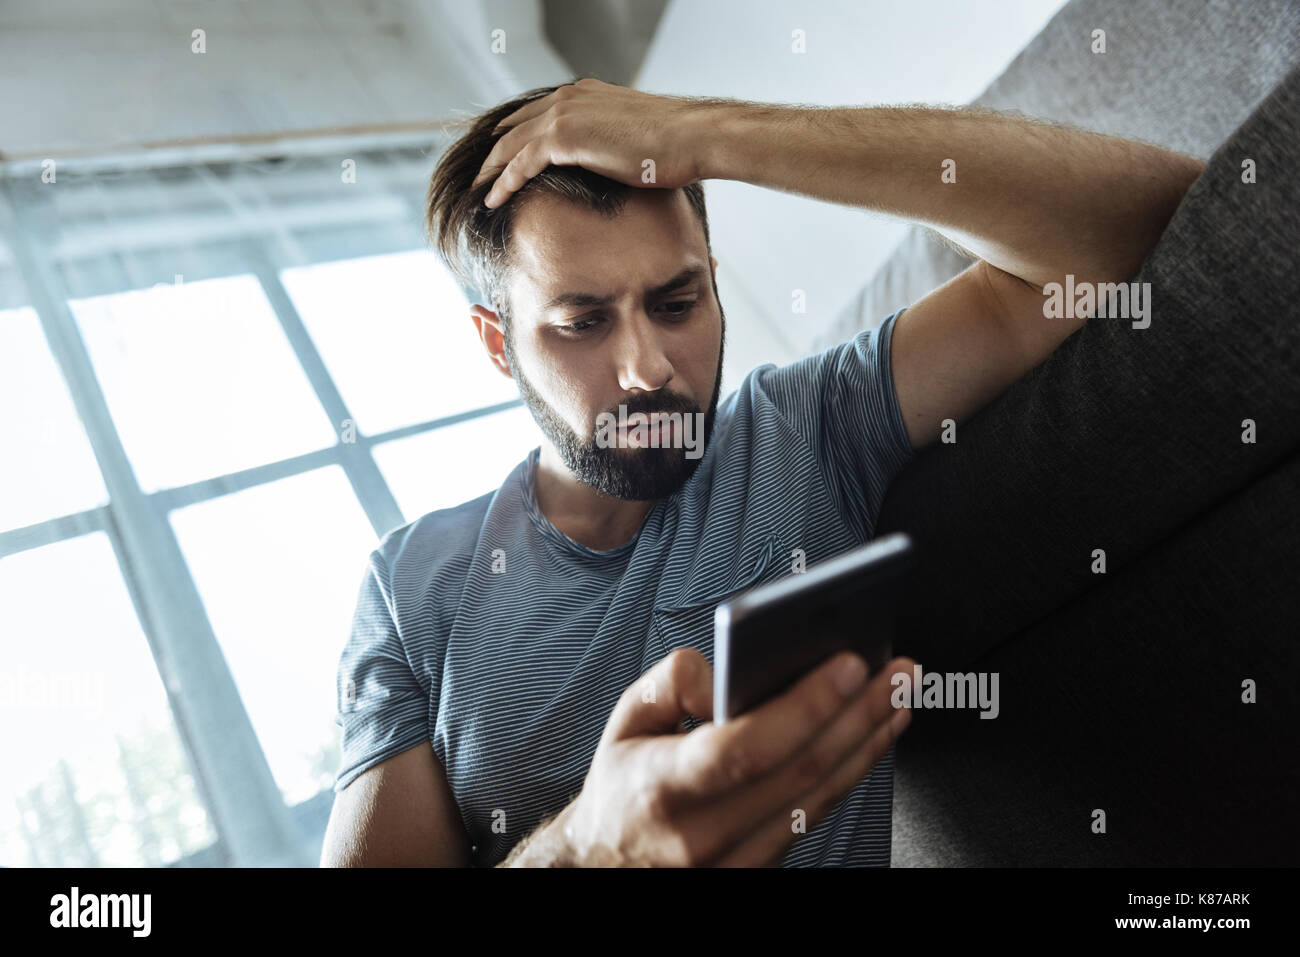 Gloomy unhappy man suffering from depression - Stock Image